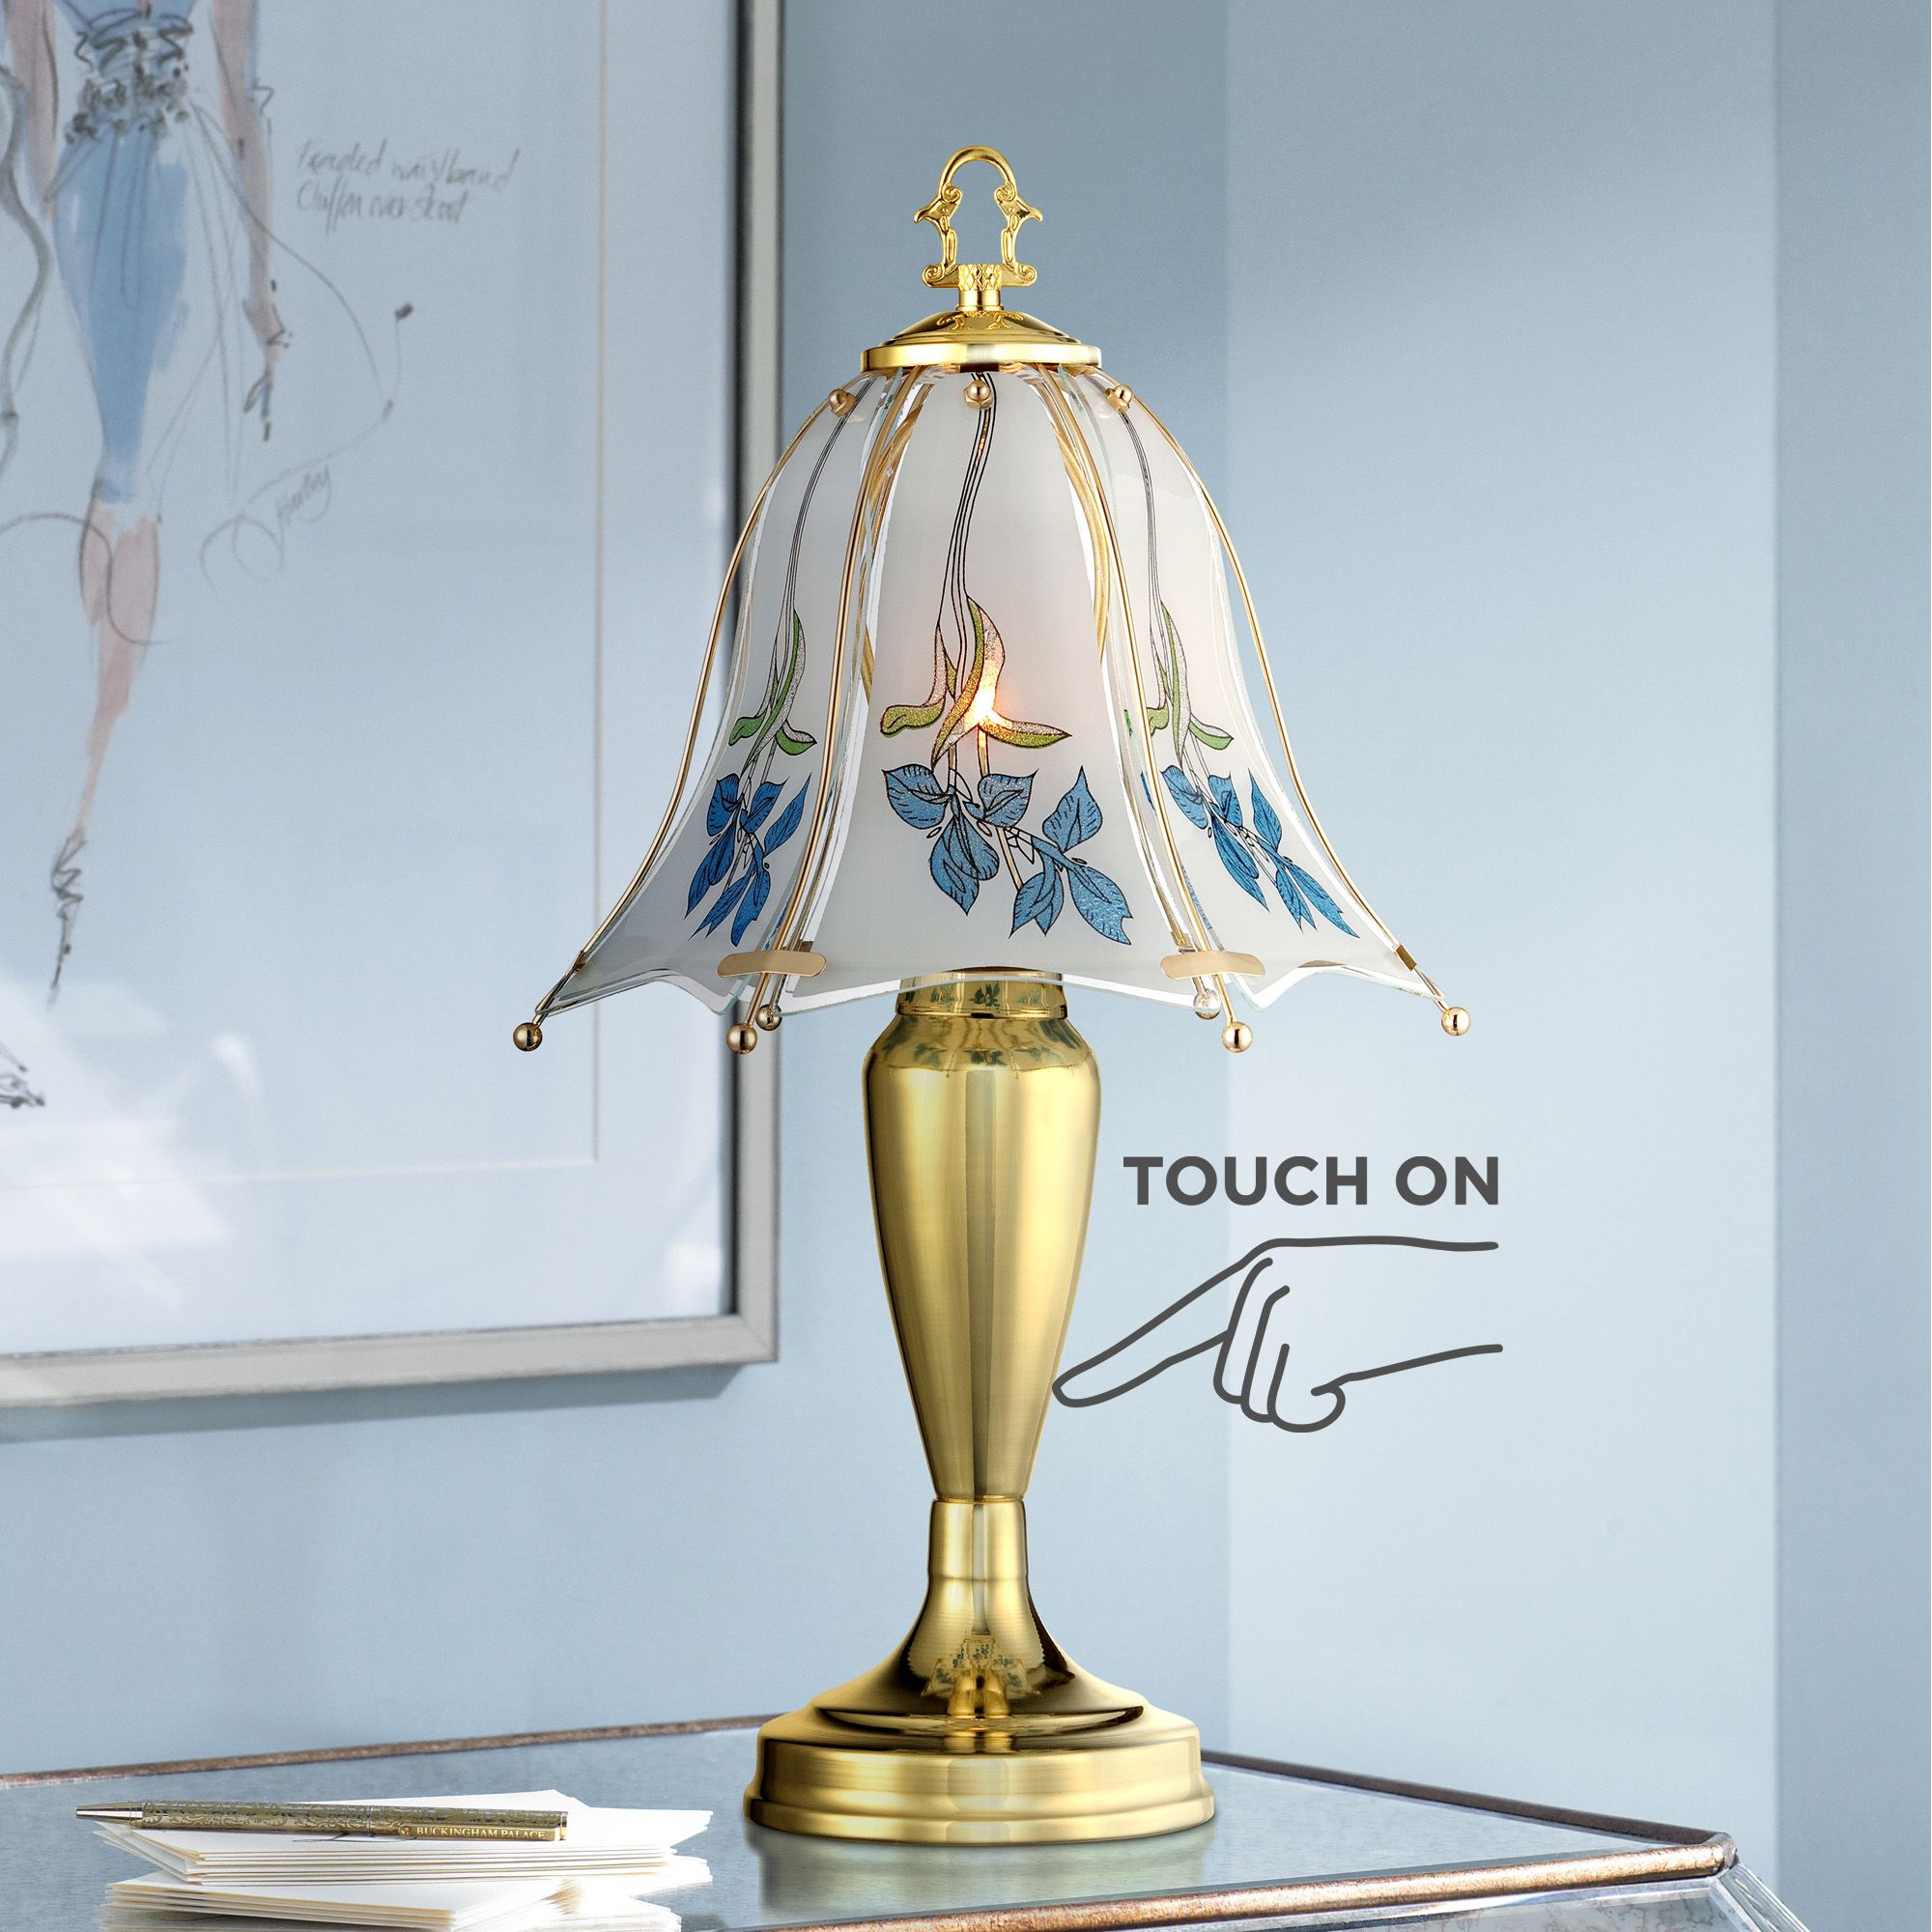 "Regency Hill Traditional Accent Table Lamp 18"" High Brass Blue Floral Glass Shade Touch On Off for Bedroom Bedside Office"